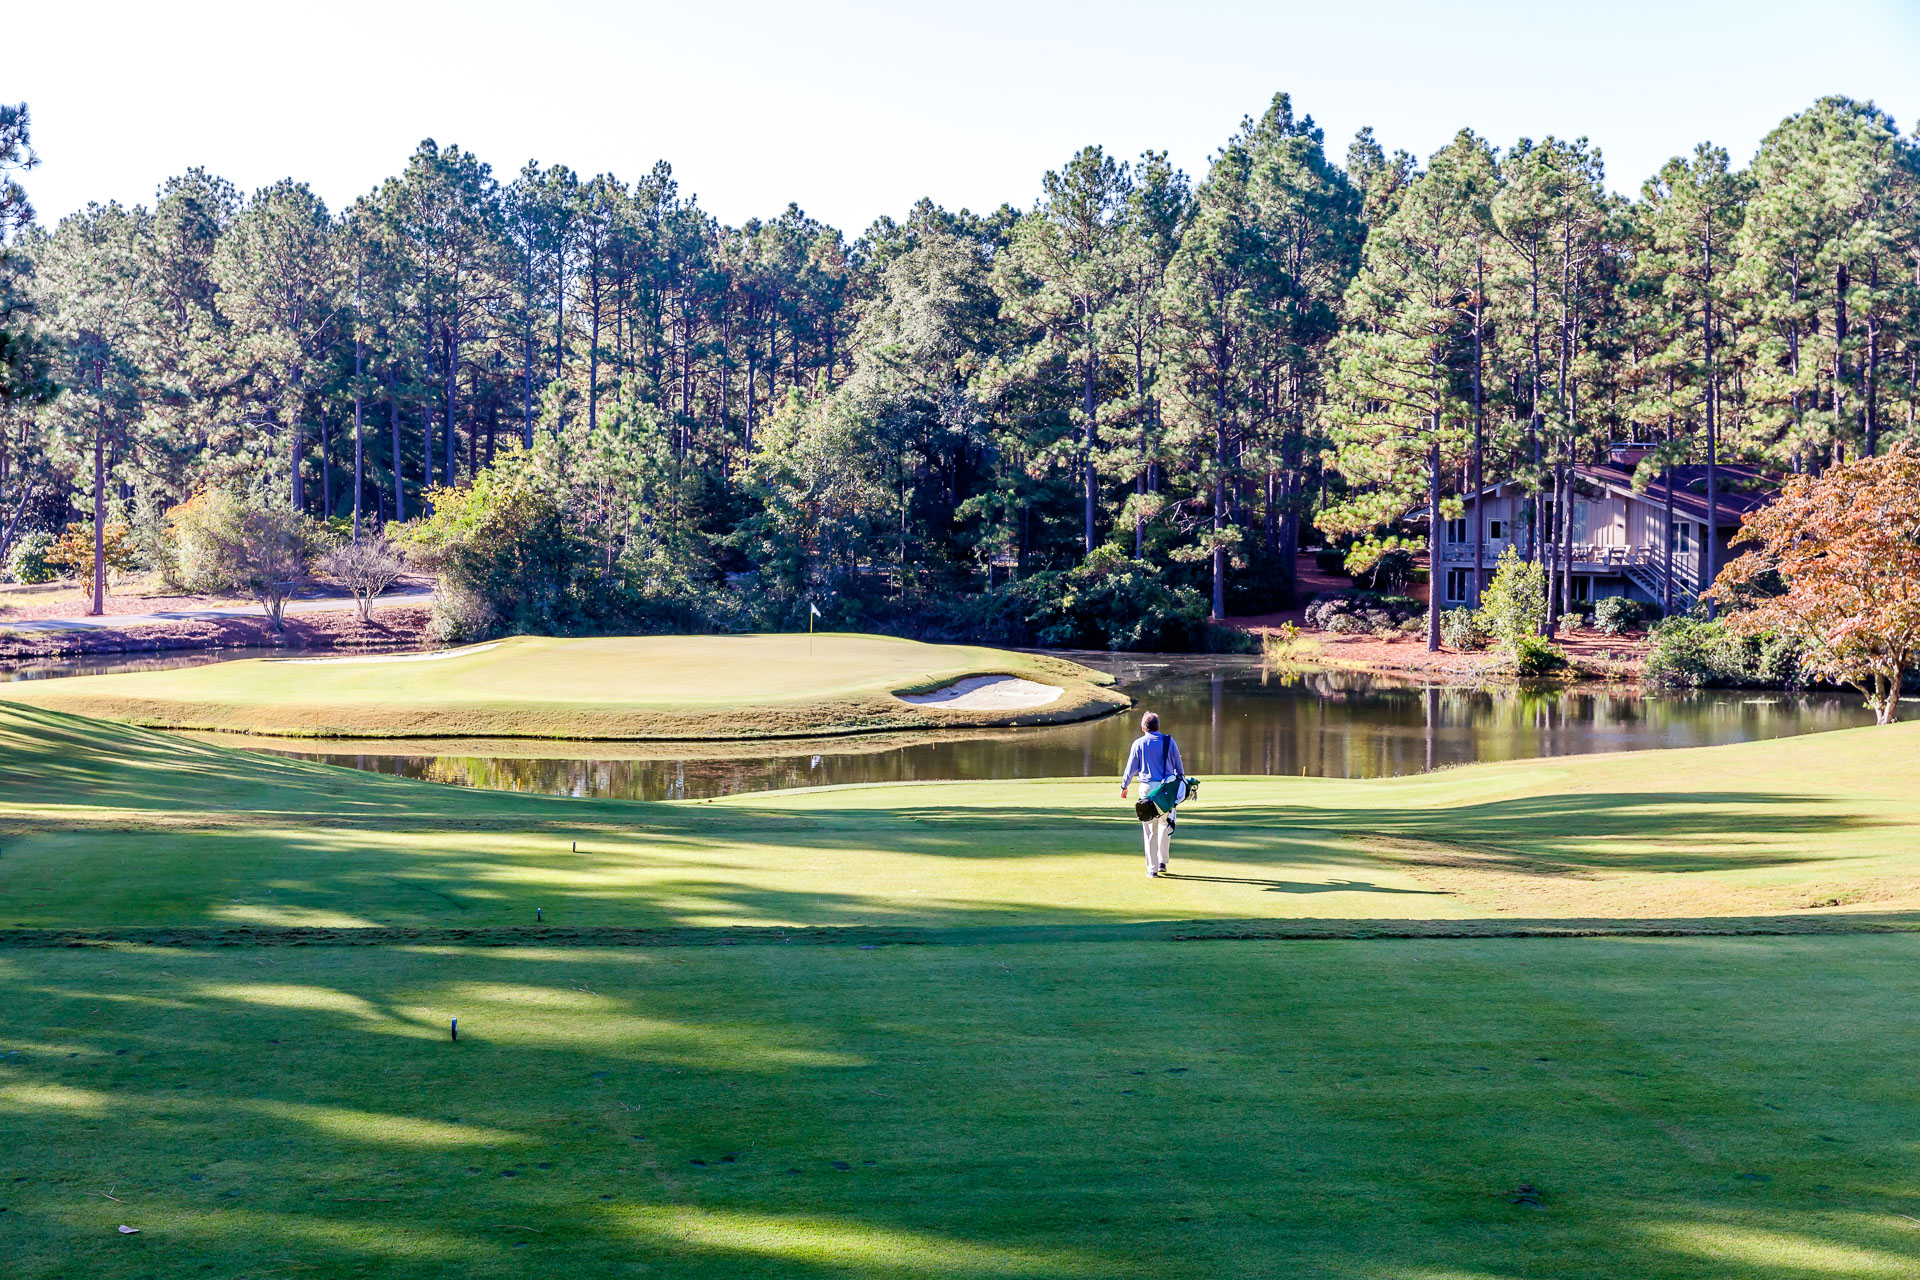 The author walking the third hole at the Country Club of North Carolina Dogwood Course, where long ago the club established a policy to promote and allow walking at all times.